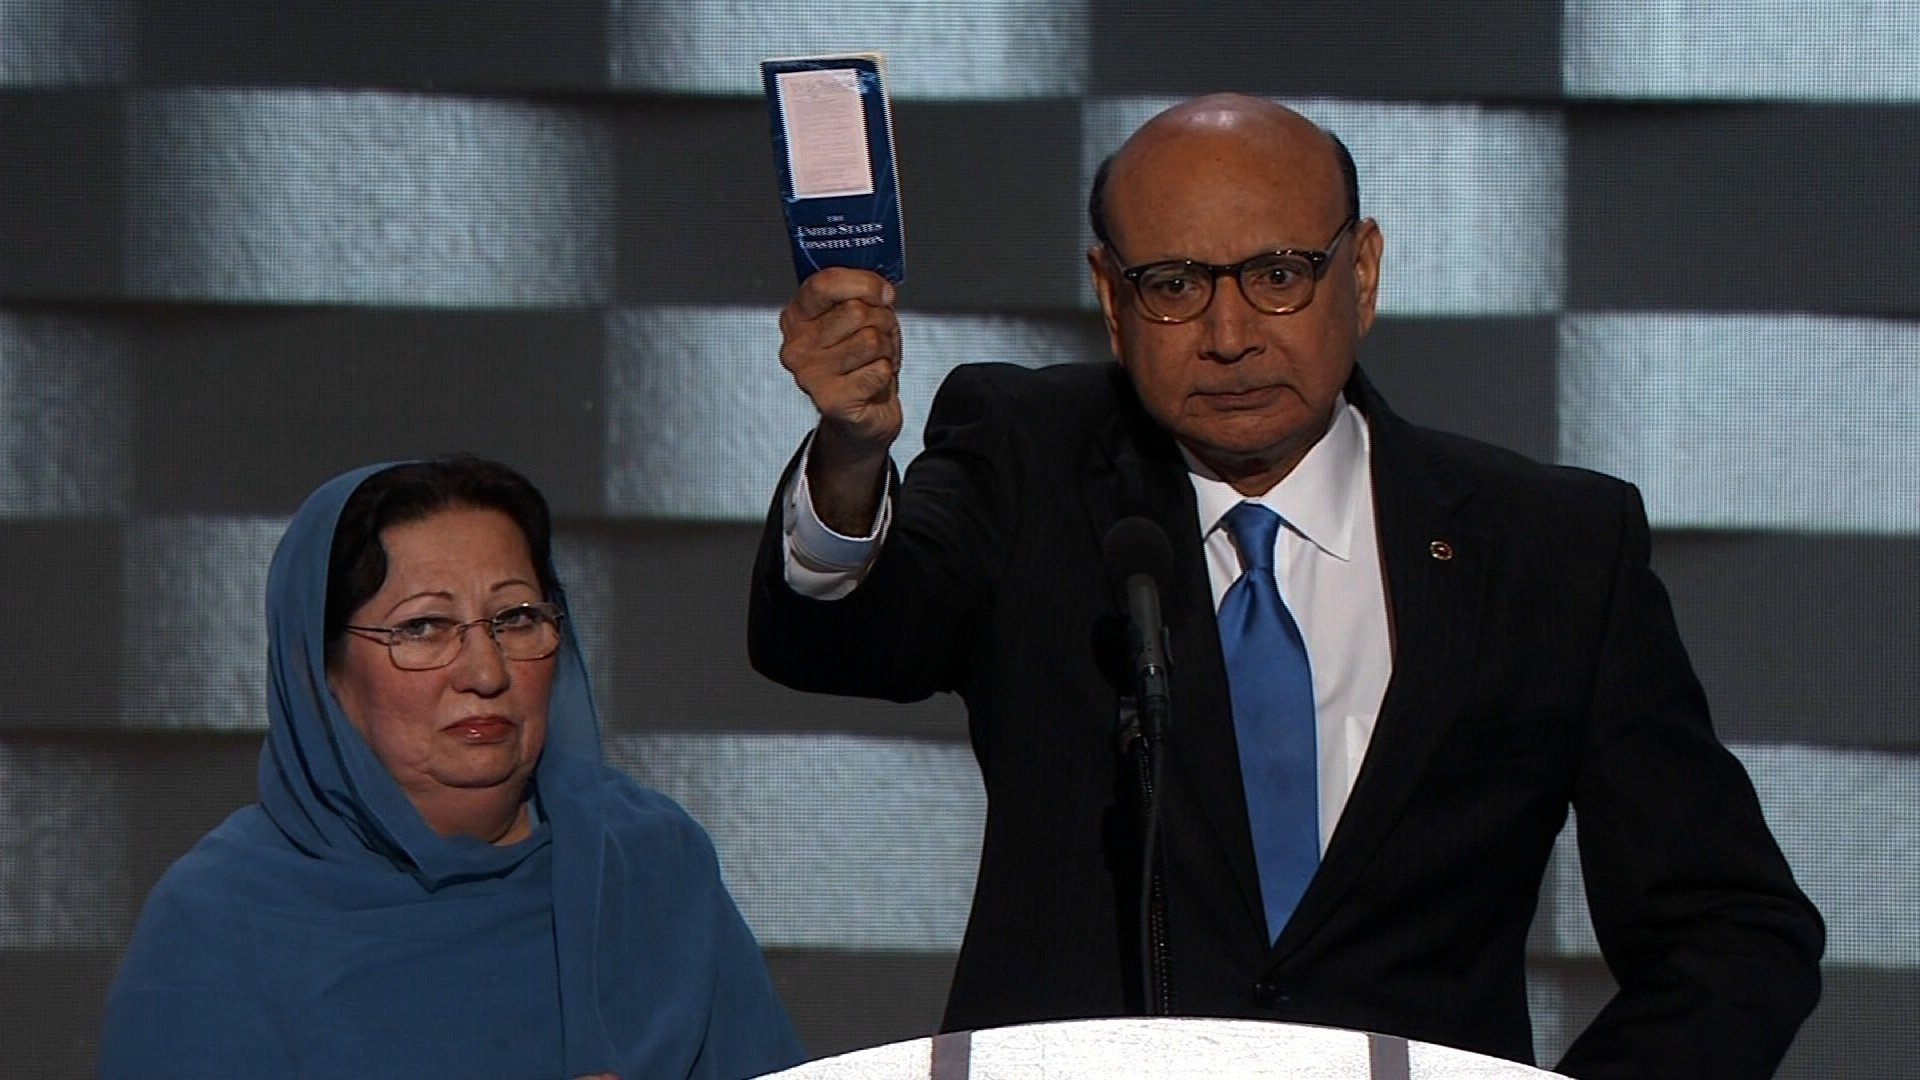 Khizr Khan, whose son was one of 14 muslims serving the U.S. armed forced to die in the years following 9/11, addresses the Democratic National Convention in Philadelphia July 28, 2016. (Source: AP Photo)